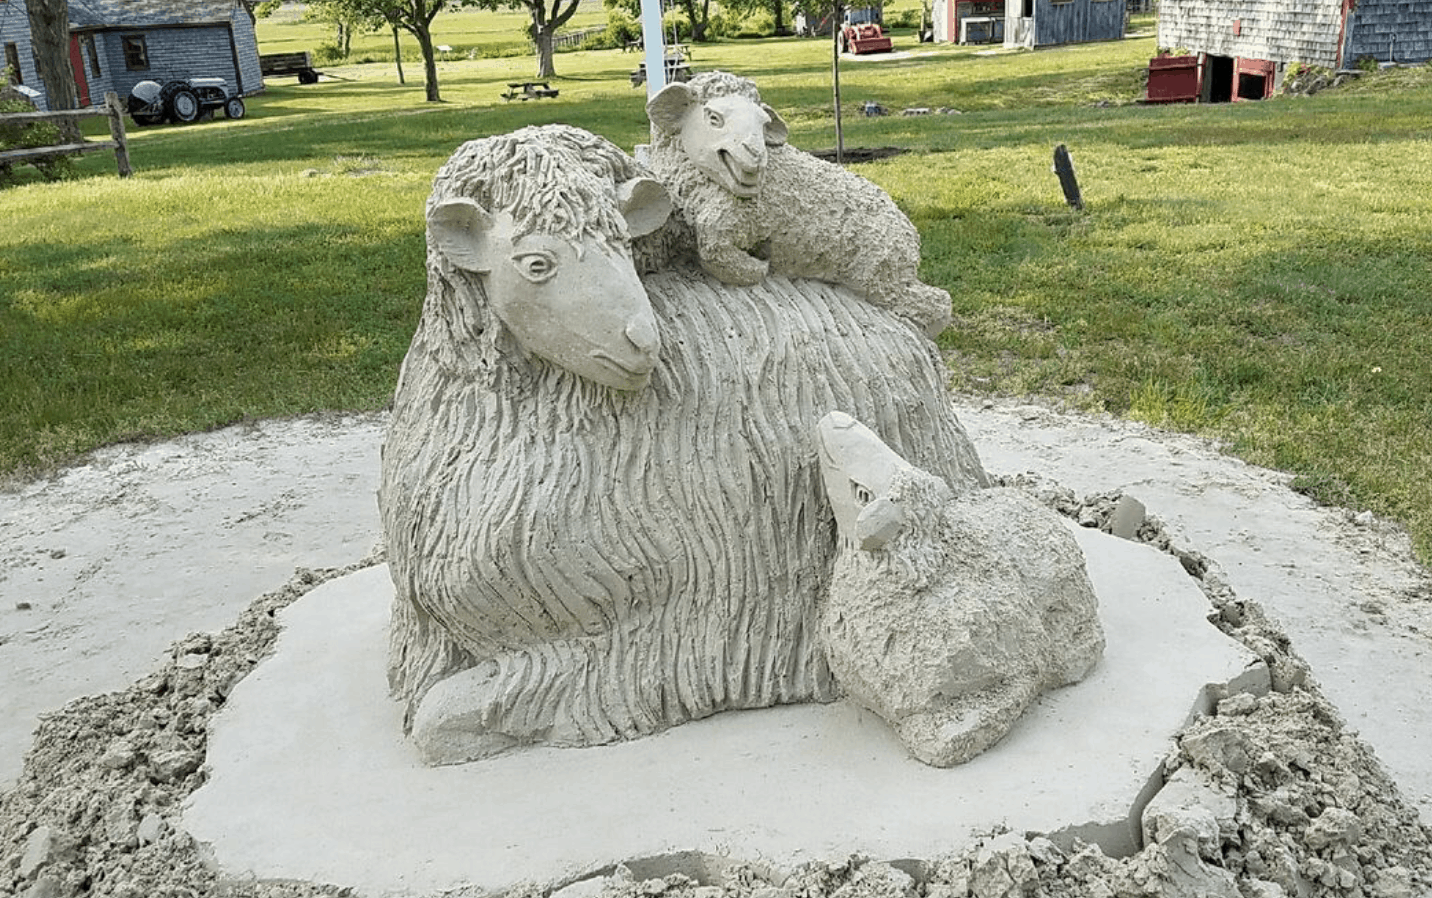 Sand art of a mother lamb with her babies from Taylor Bray Farms